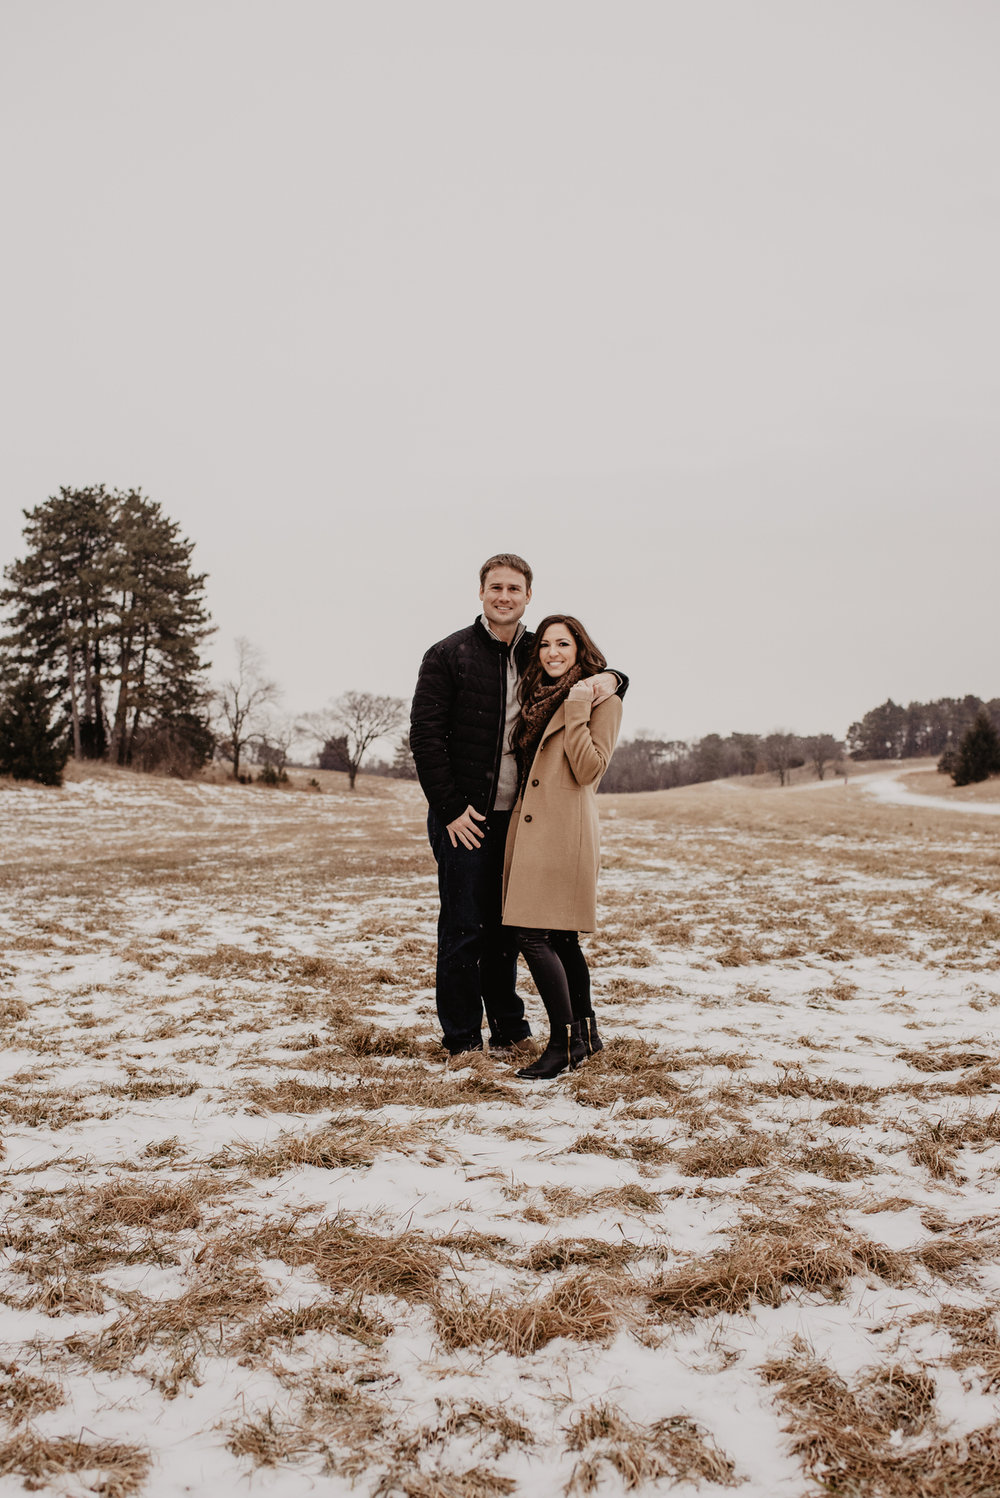 Lincoln-Columbus-Nebraska-Winter-Engagement-Kaylie-Sirek-Photography-15.jpg